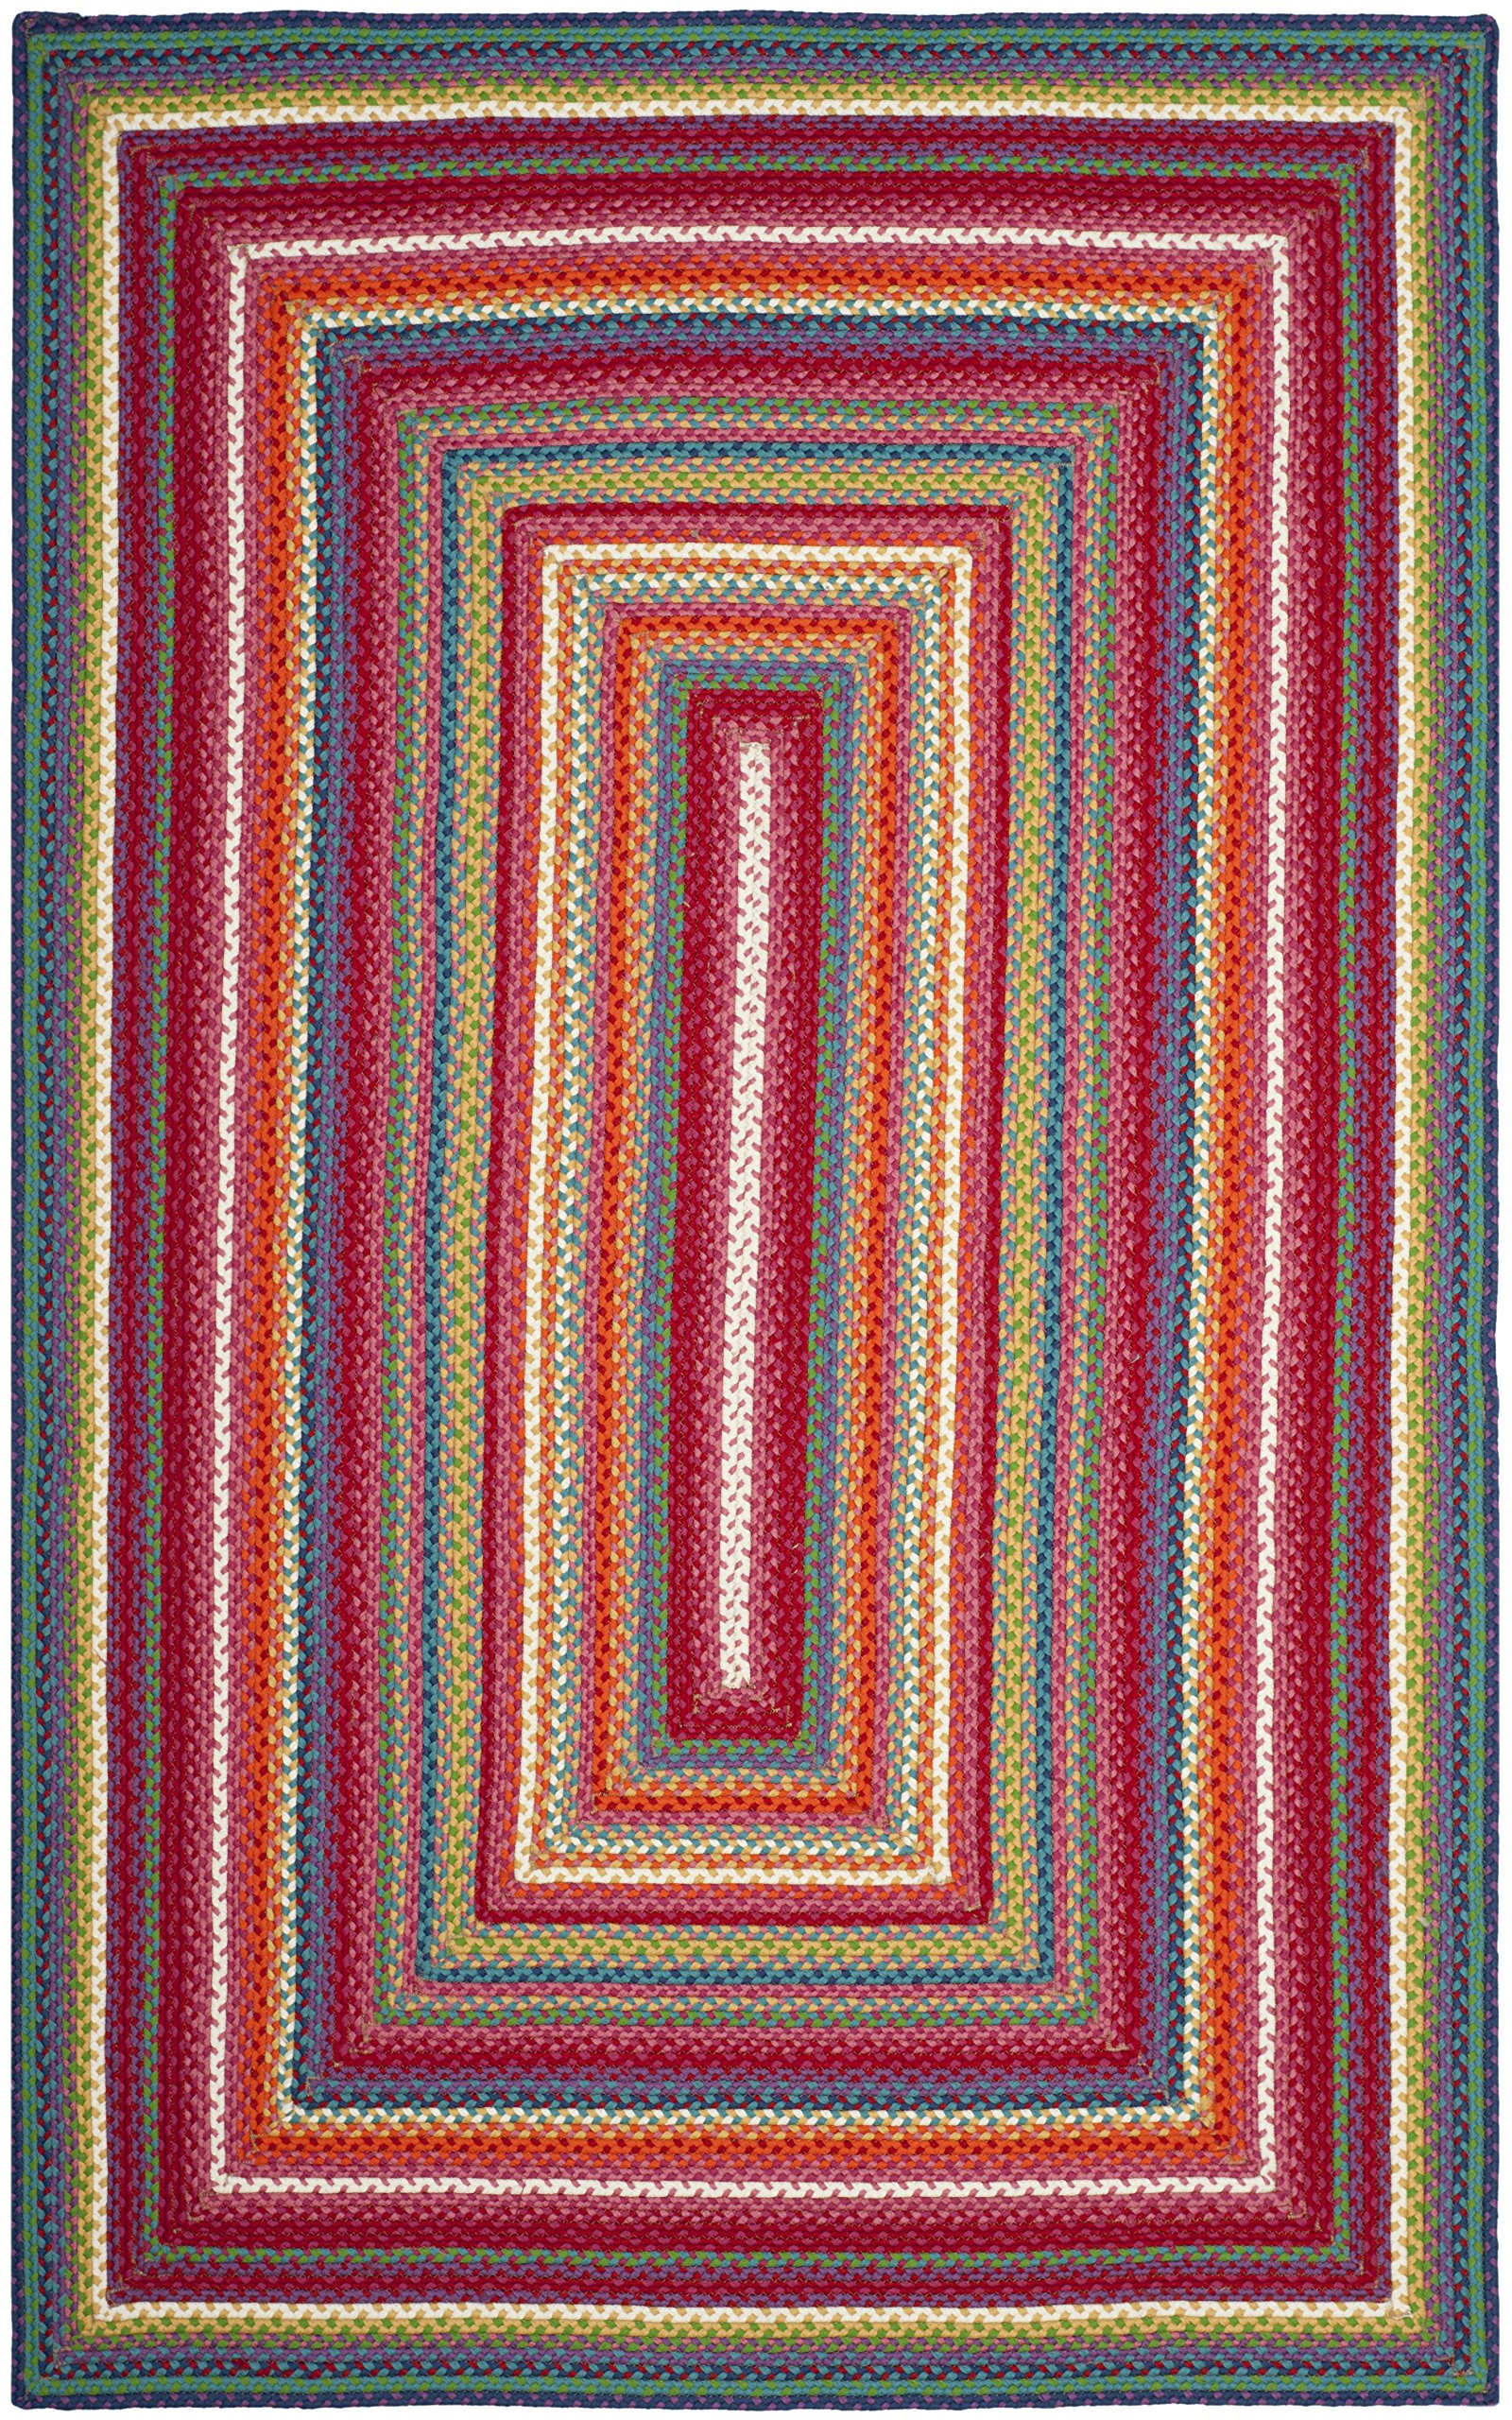 Safavieh Braided Collection BRD316A Handwoven Multicolored Area Rug (5' x 8')